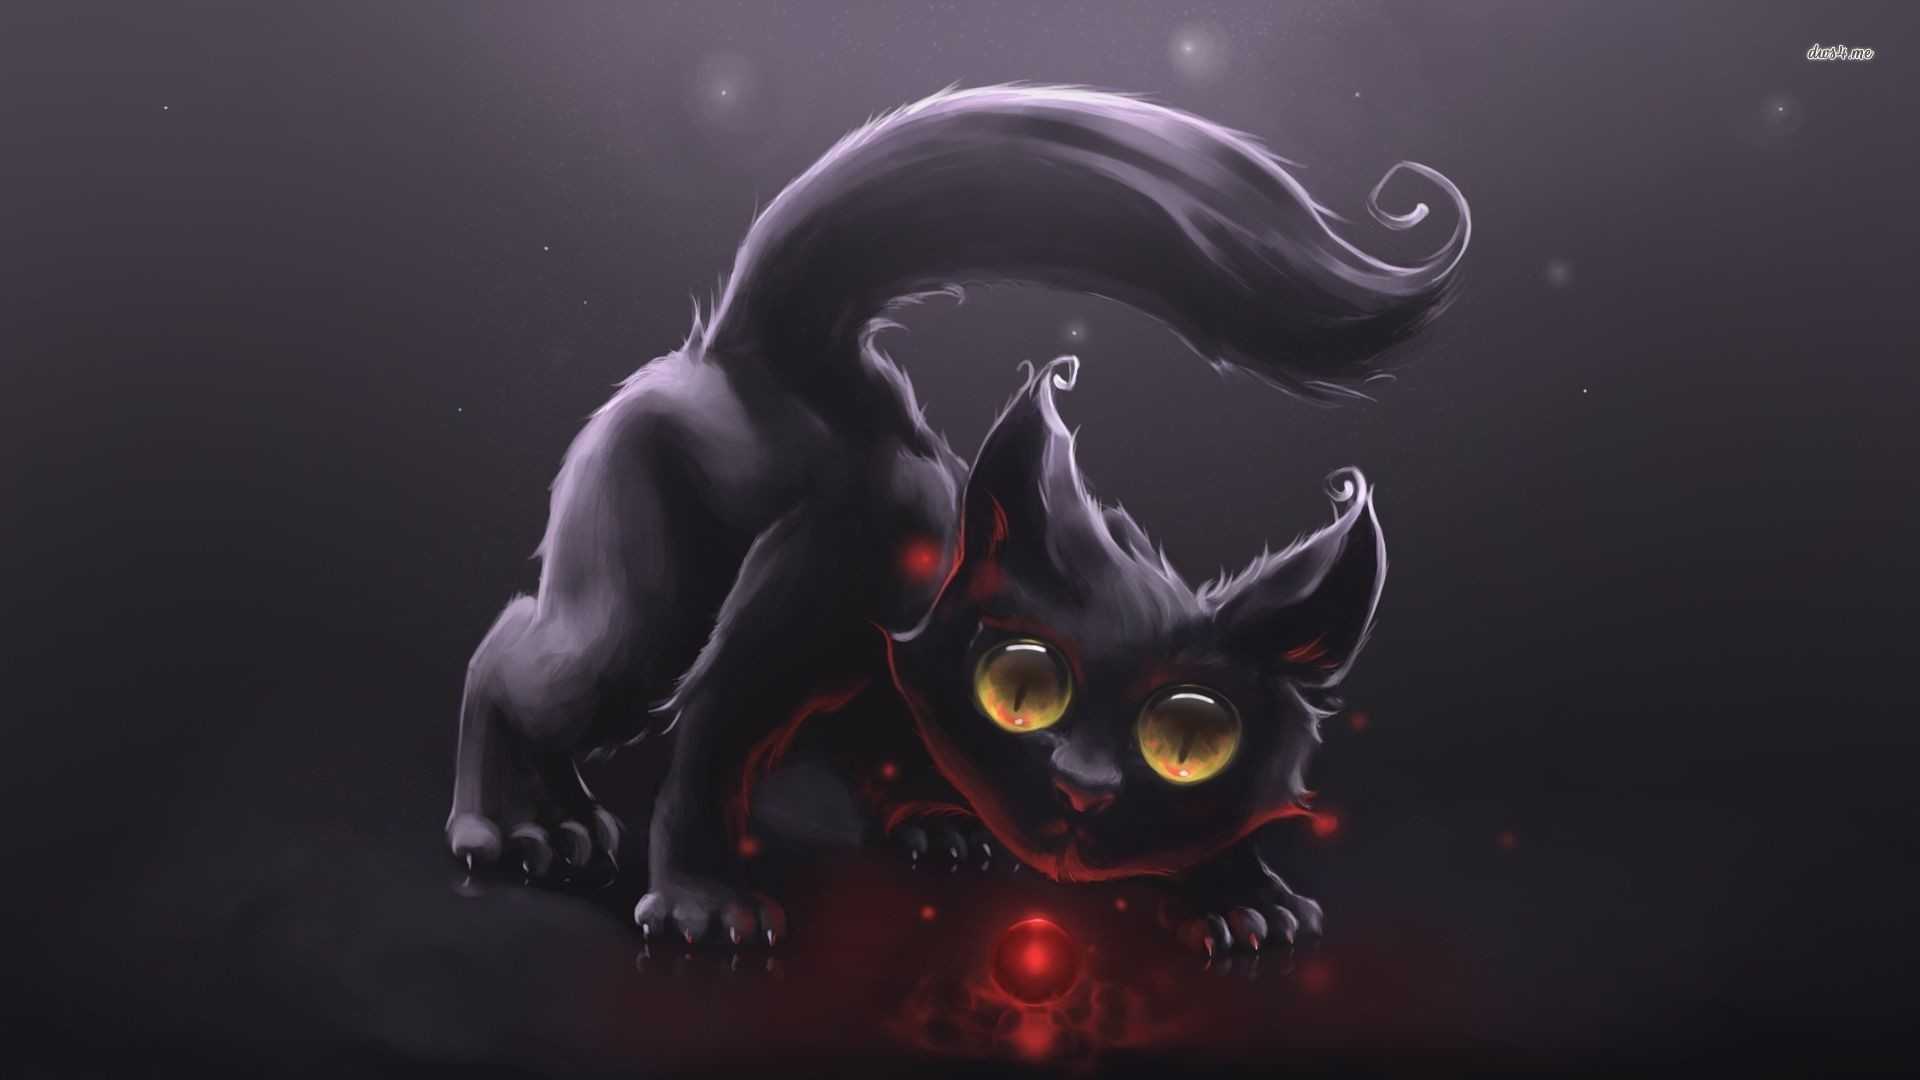 Res: 1920x1080, ... Cute black cat playing with a red orb wallpaper  ...